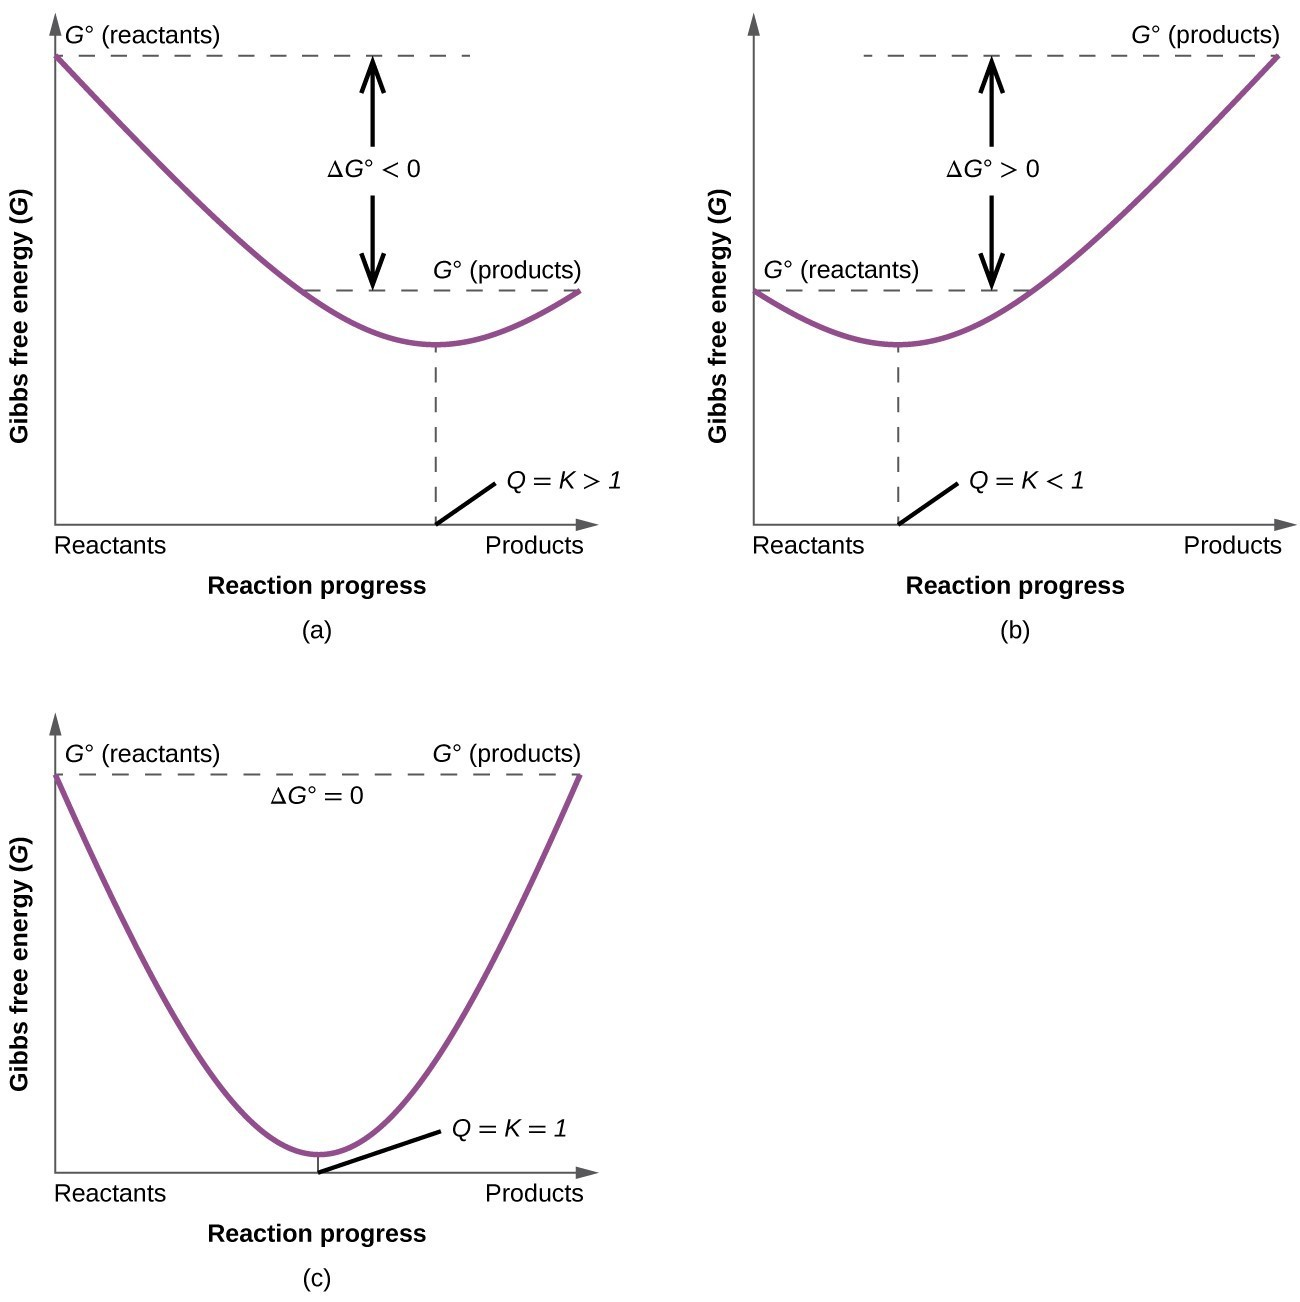 "Three graphs, labeled, ""a,"" ""b,"" and ""c"" are shown where the y-axis is labeled, ""Gibbs free energy ( G ),"" and, ""G superscript degree sign ( reactants ),"" while the x-axis is labeled, ""Reaction progress,"" and ""Reactants,"" on the left and, ""Products,"" on the right. In graph a, a line begins at the upper left side and goes steadily down to a point about halfway up the y-axis and two thirds of the way on the x-axis, then rises again to a point labeled, ""G superscript degree sign ( products ),"" that is slightly higher than halfway up the y-axis. The distance between the beginning and ending points of the graph is labeled as, ""delta G less than 0,"" while the lowest point on the graph is labeled, ""Q equals K greater than 1."" In graph b, a line begins at the middle left side and goes steadily down to a point about two fifths up the y-axis and one third of the way on the x-axis, then rises again to a point labeled, ""G superscript degree sign ( products ),"" that is near the top of the y-axis. The distance between the beginning and ending points of the graph is labeled as, ""delta G greater than 0,"" while the lowest point on the graph is labeled, ""Q equals K less than 1."" In graph c, a line begins at the upper left side and goes steadily down to a point near the bottom of the y-axis and half way on the x-axis, then rises again to a point labeled, ""G superscript degree sign ( products ),"" that is equal to the starting point on the y-axis which is labeled, ""G superscript degree sign ( reactants )."" The lowest point on the graph is labeled, ""Q equals K equals 1."" At the top of the graph is the label, ""Delta G superscript degree sign equals 0."""